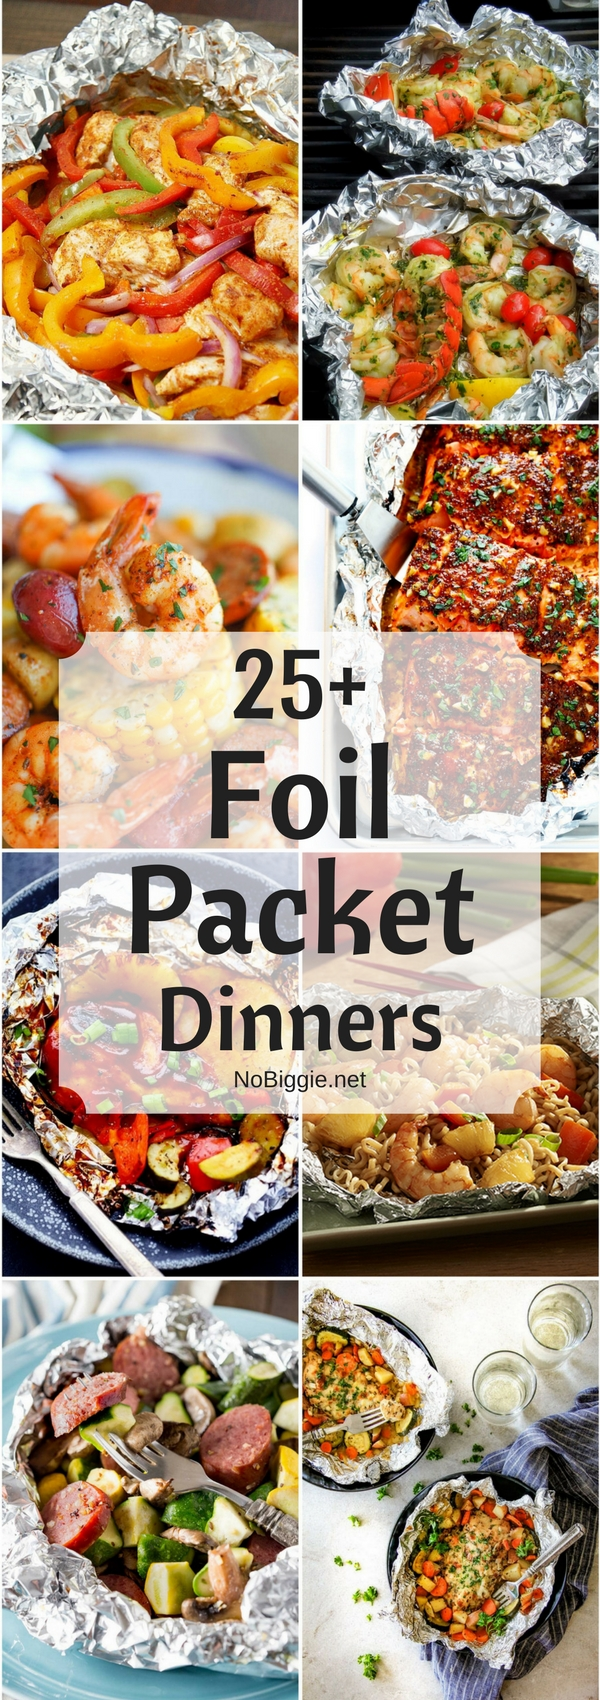 Foil packet dinners -  Easy dinner options for those busy nights. #foilpackets #easydinners #dinnerrecipes #dinner #foilpacketmeals